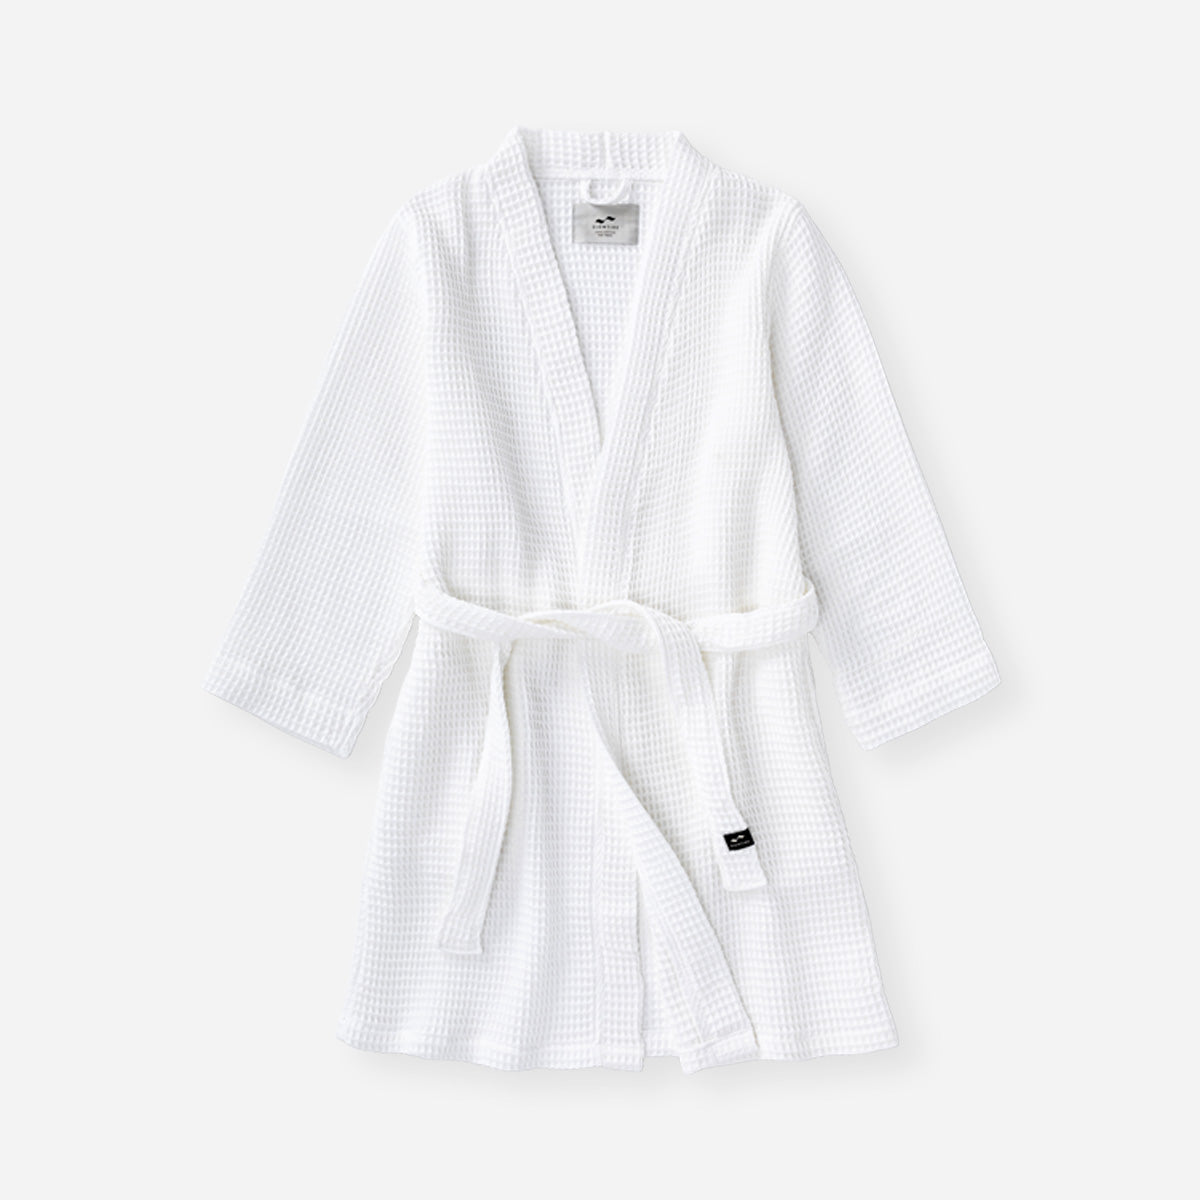 Guild Robe - White - Large - Slowtide